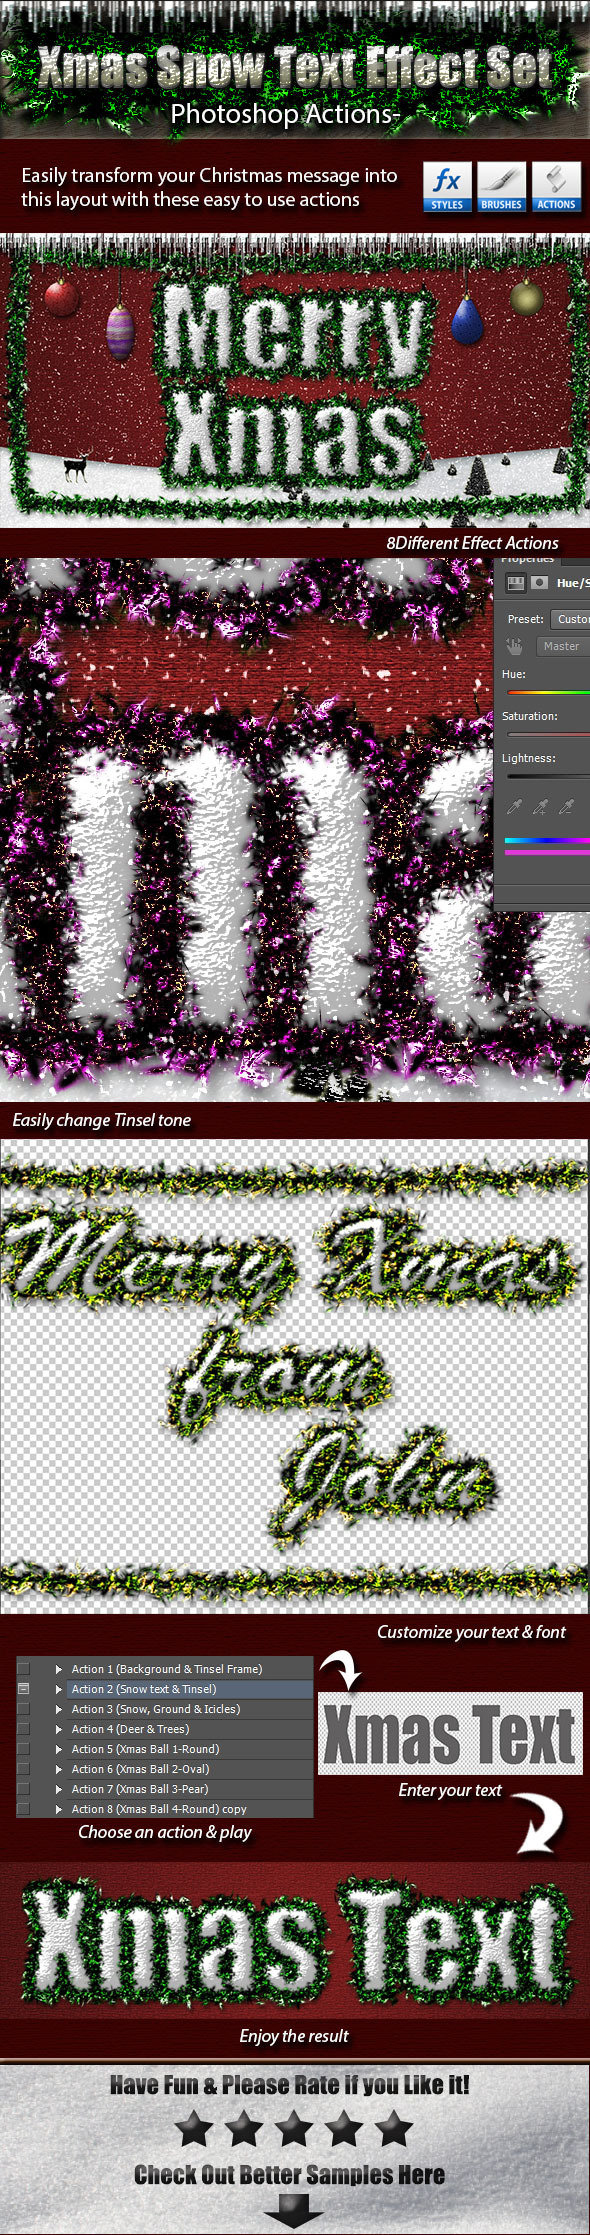 Xmas Snow Text Effect Set - Text Effects Actions